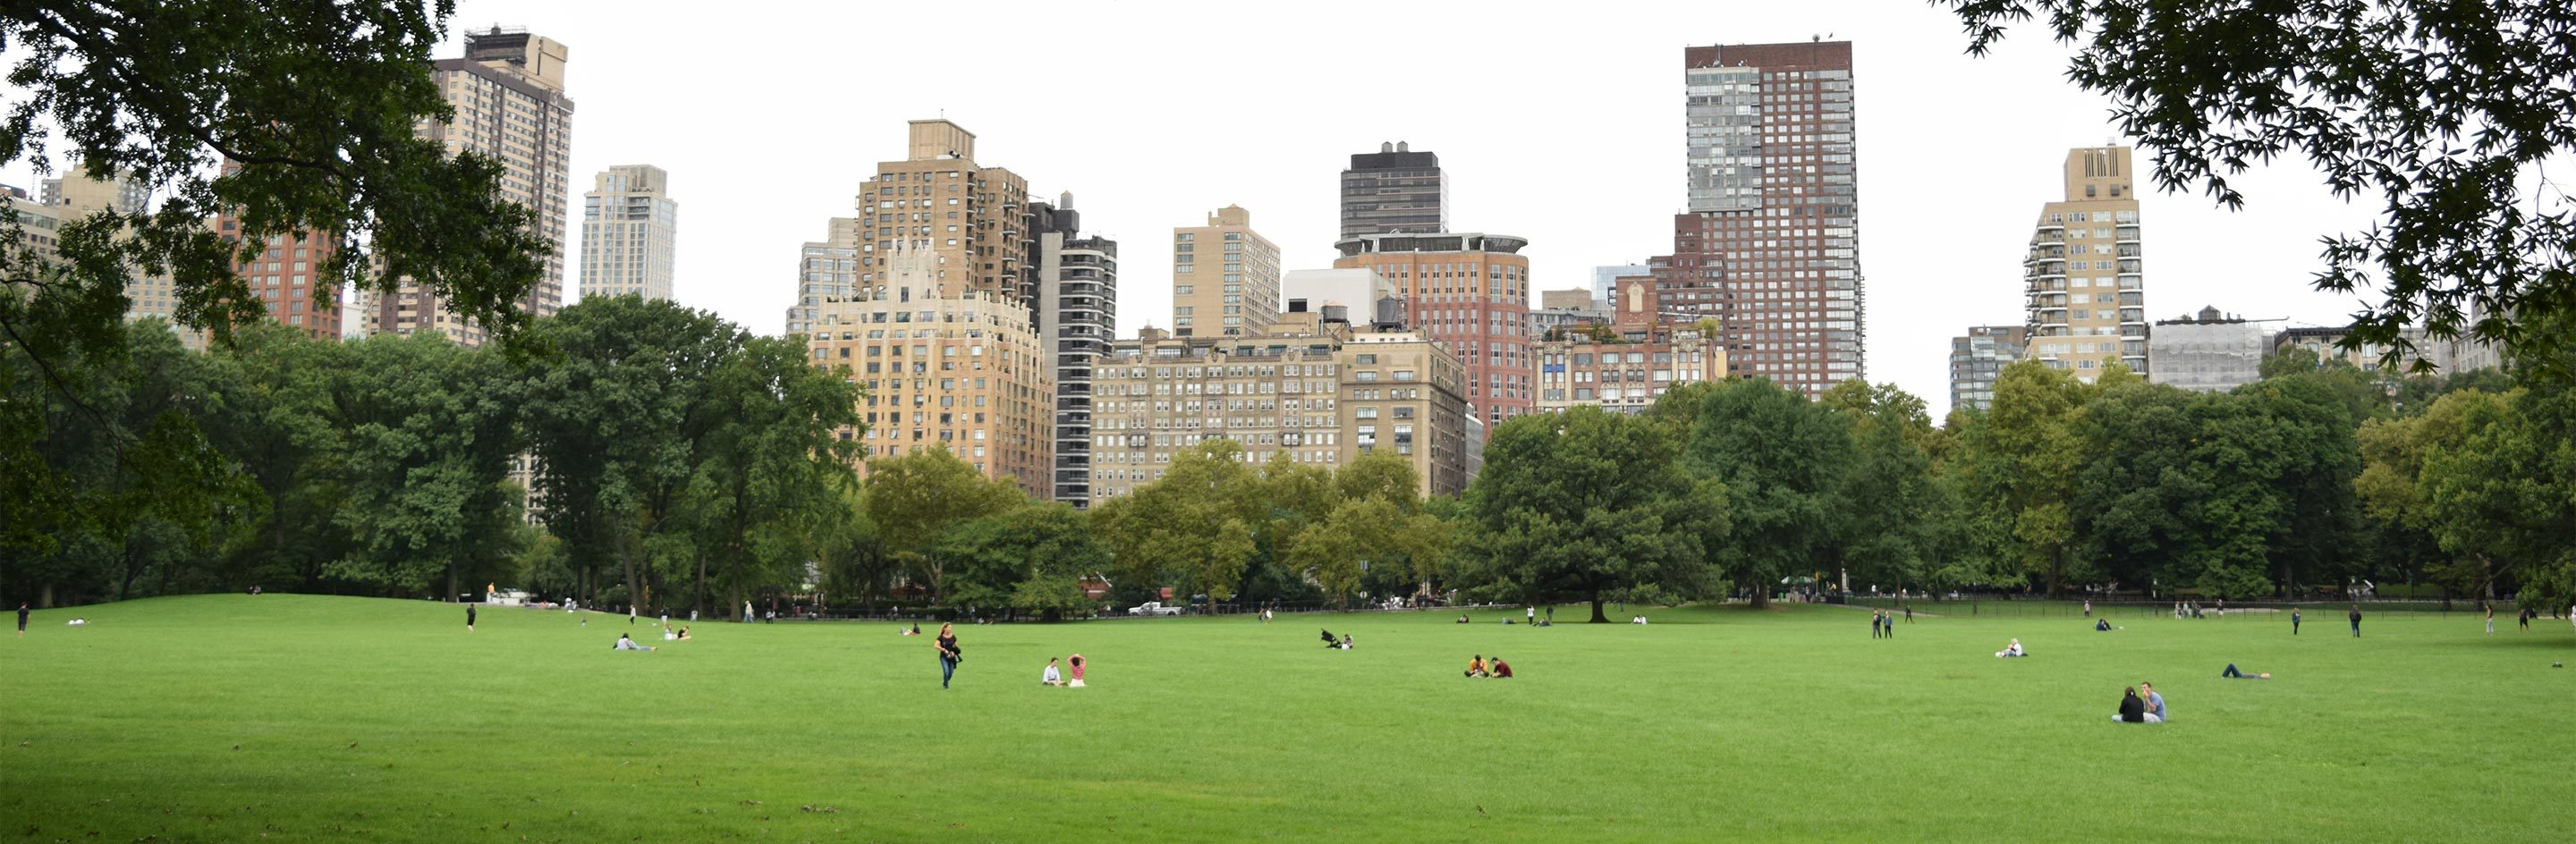 Sheep Meadow Landscape with Skyline